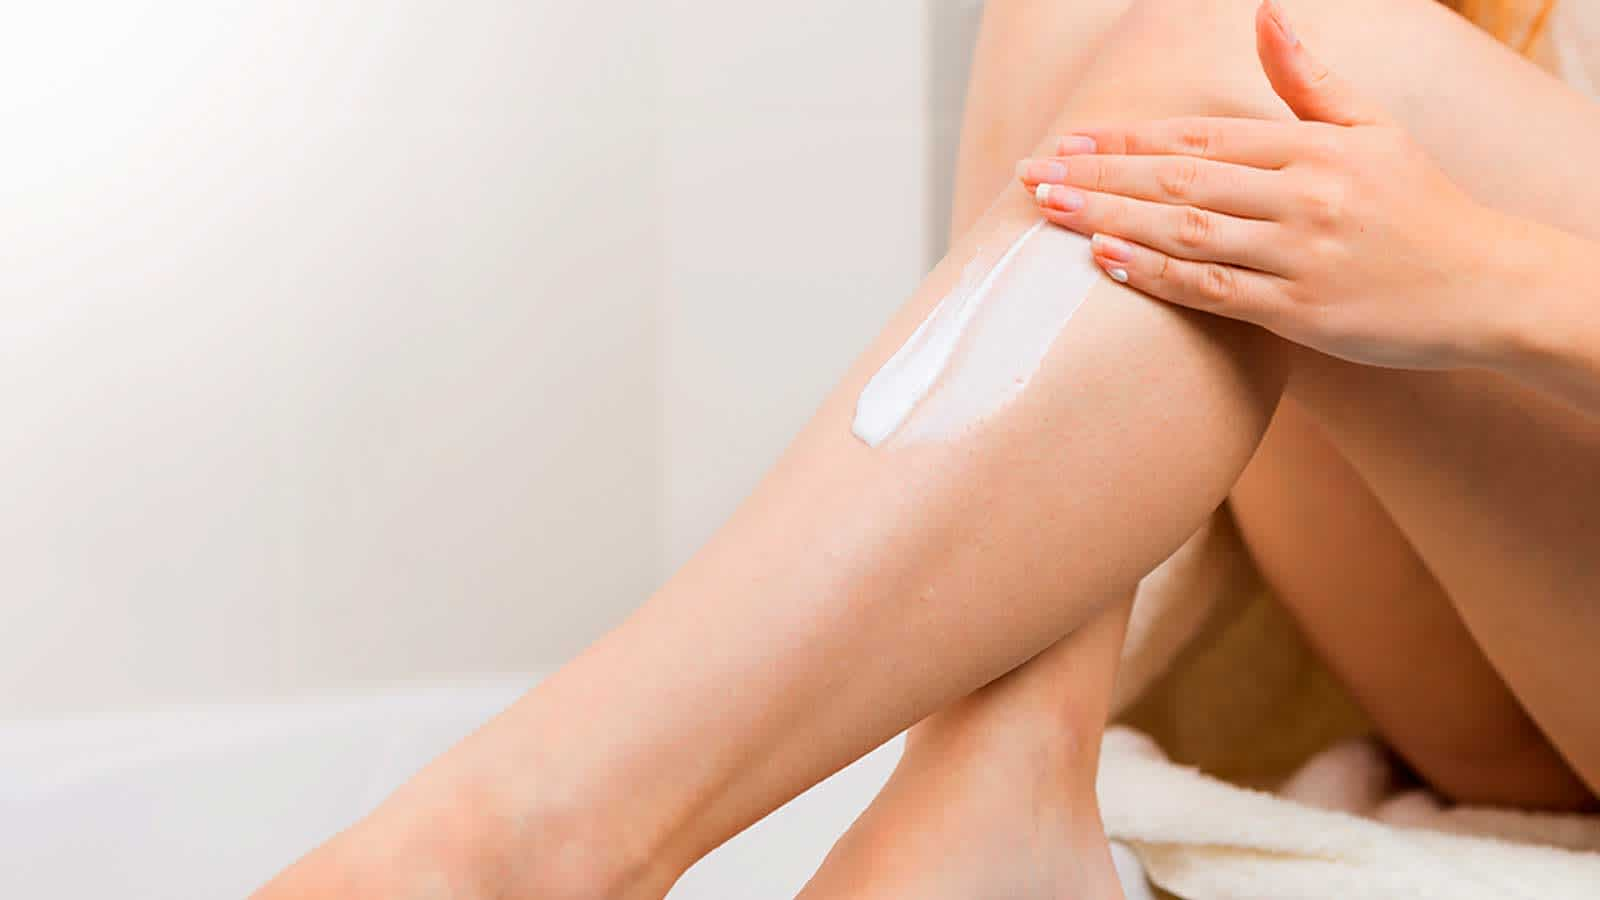 Woman Apply Moisturizer After Shaving Legs